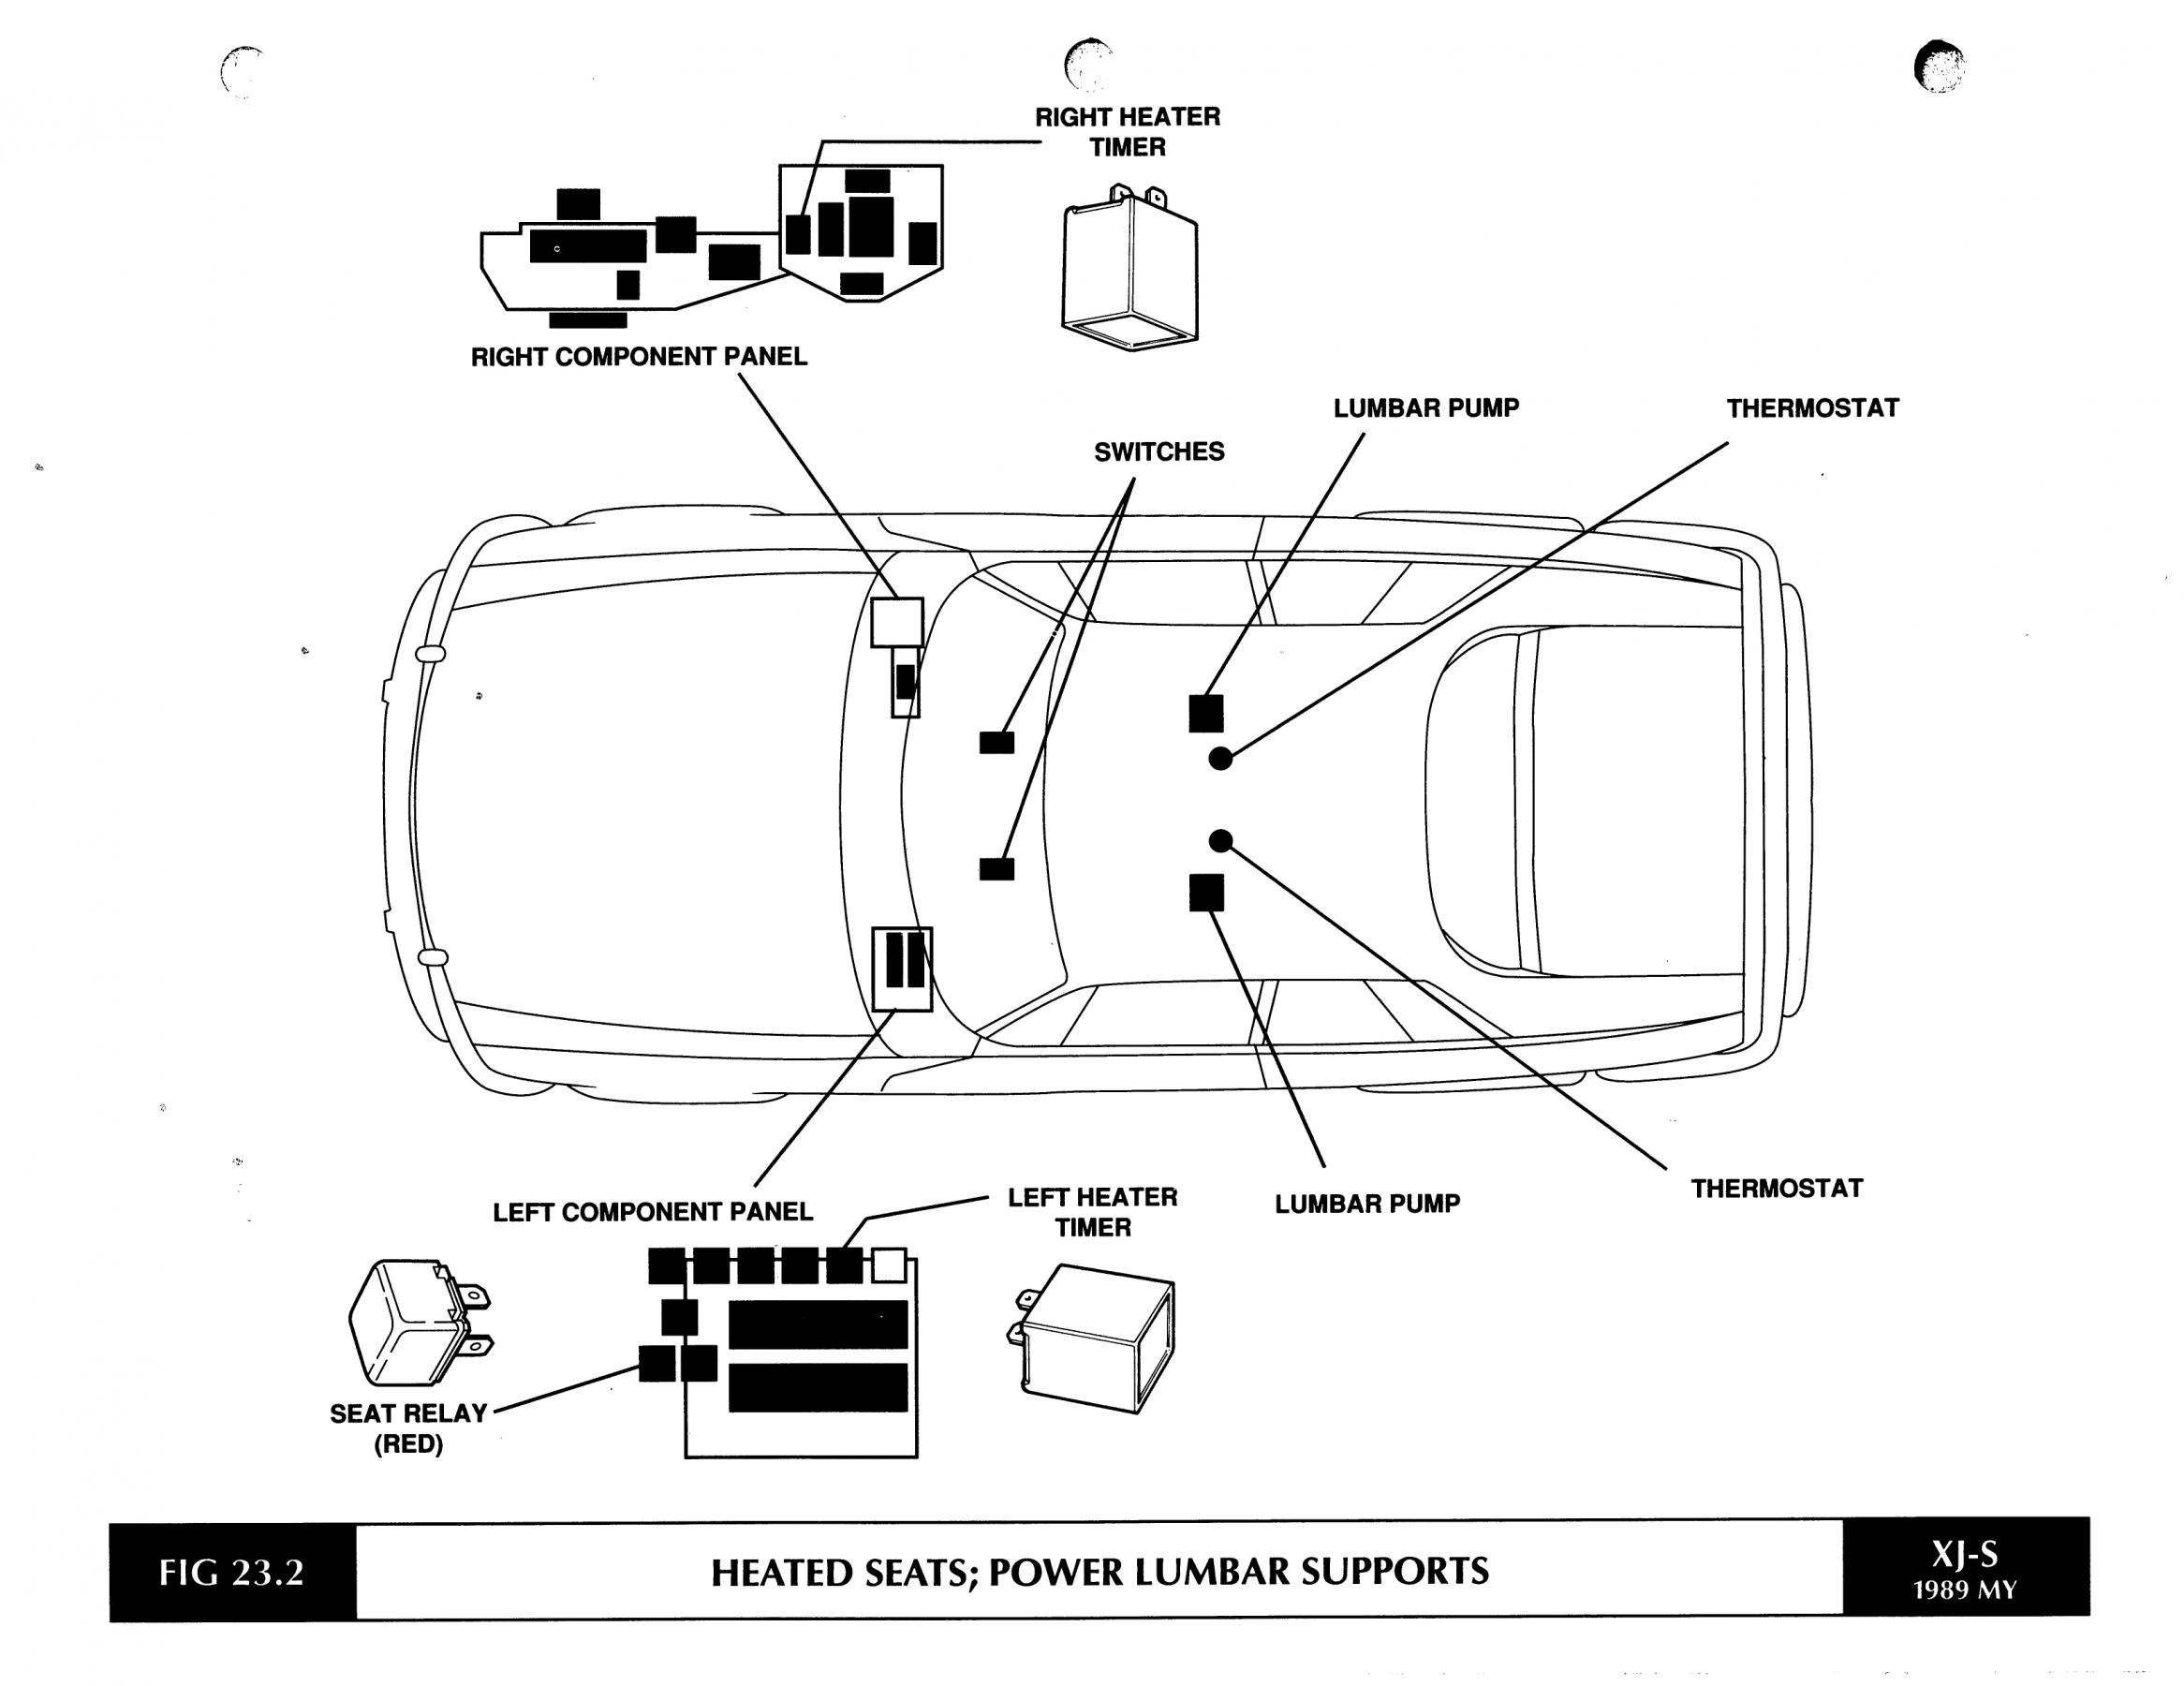 Wiring Diagram 1995 Jaguar Xj6, Wiring, Free Engine Image